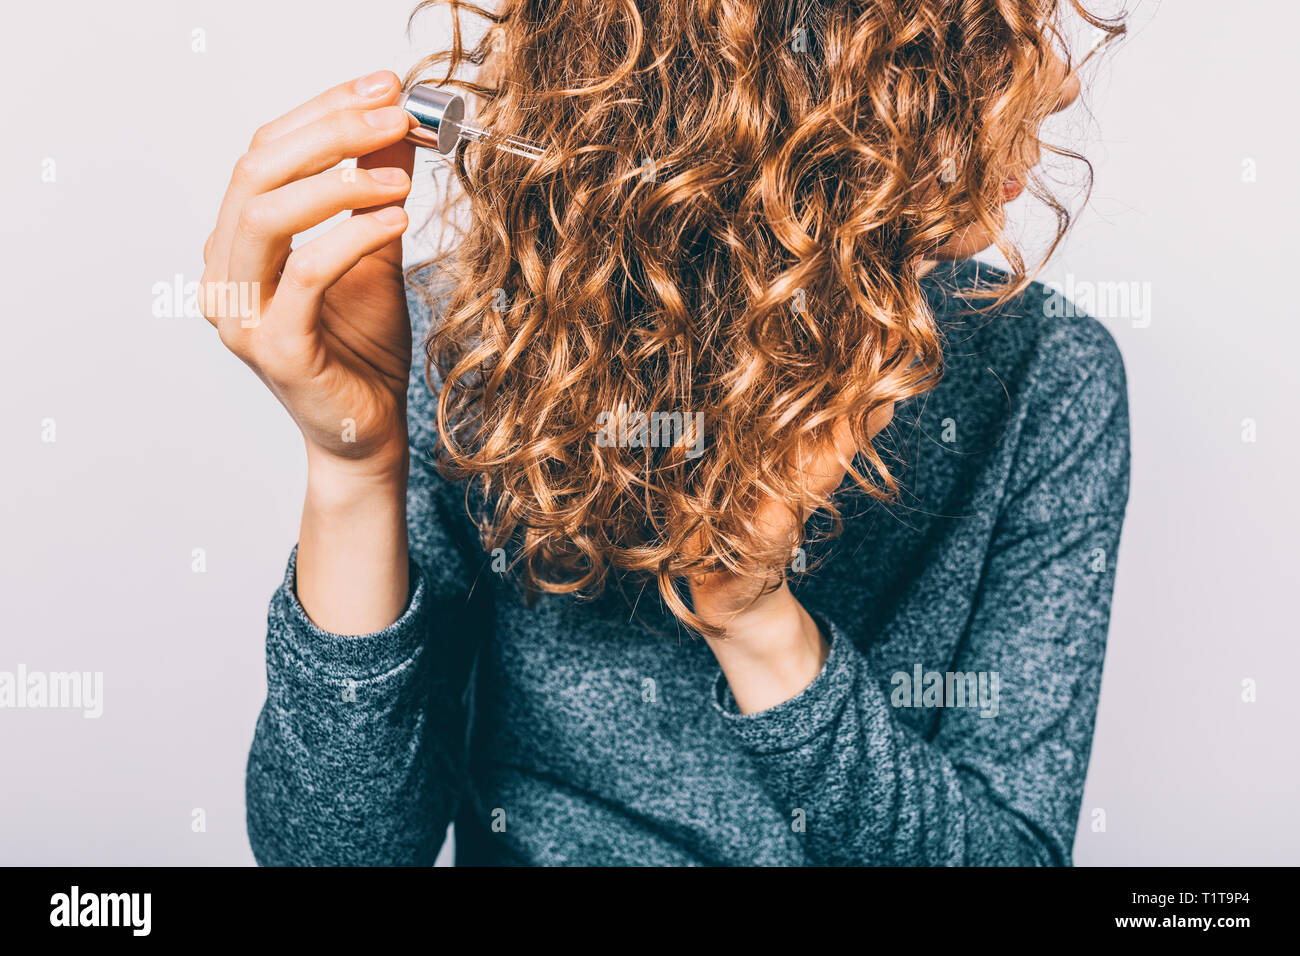 Young Woman Holding Pipette With Nutritional Oil Applying On Her Thick Curly Hair Female S Hands Using Cosmetic Serum To Prevent Split Ends Stock Photo Alamy